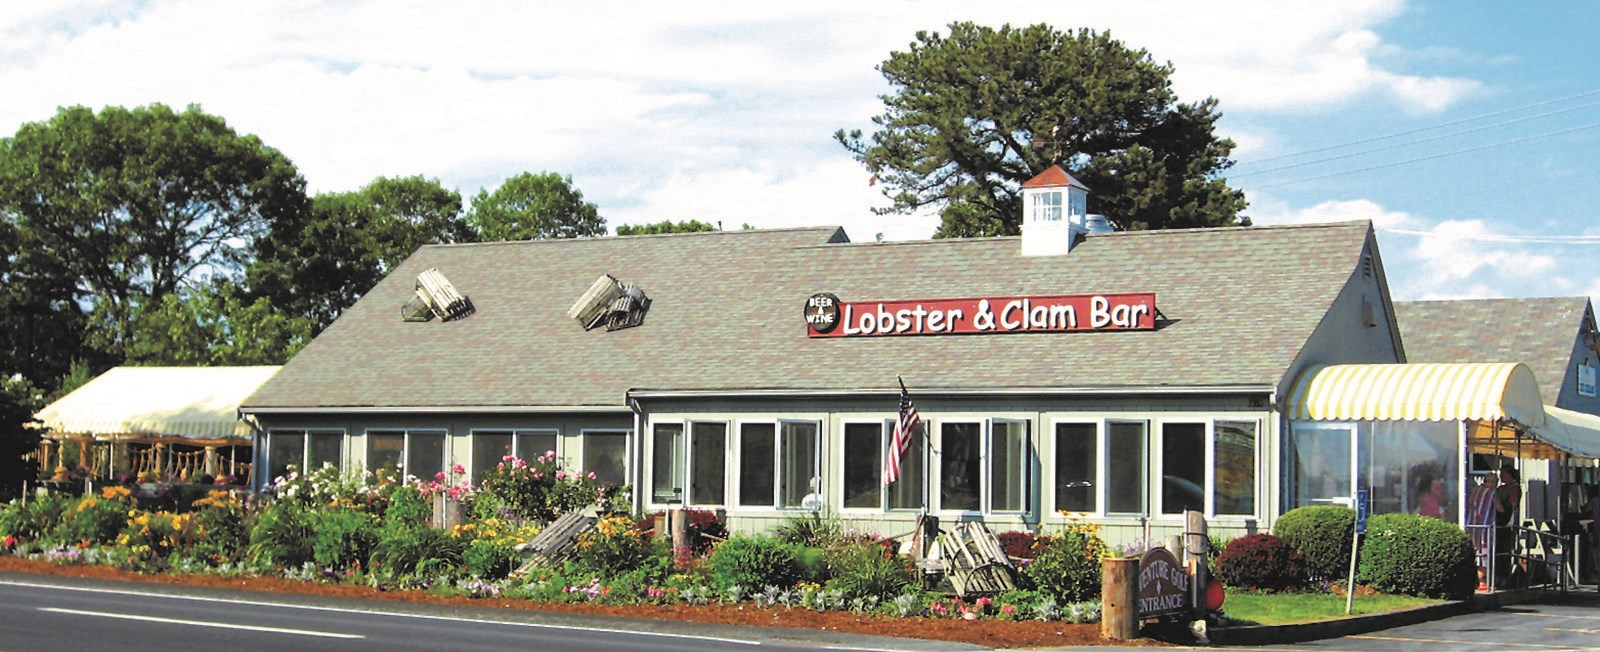 Arnold's in Eastham is a very popular restaurant with a line out the door each night. Hear from the owner about how the clam bar started 40 years ago.